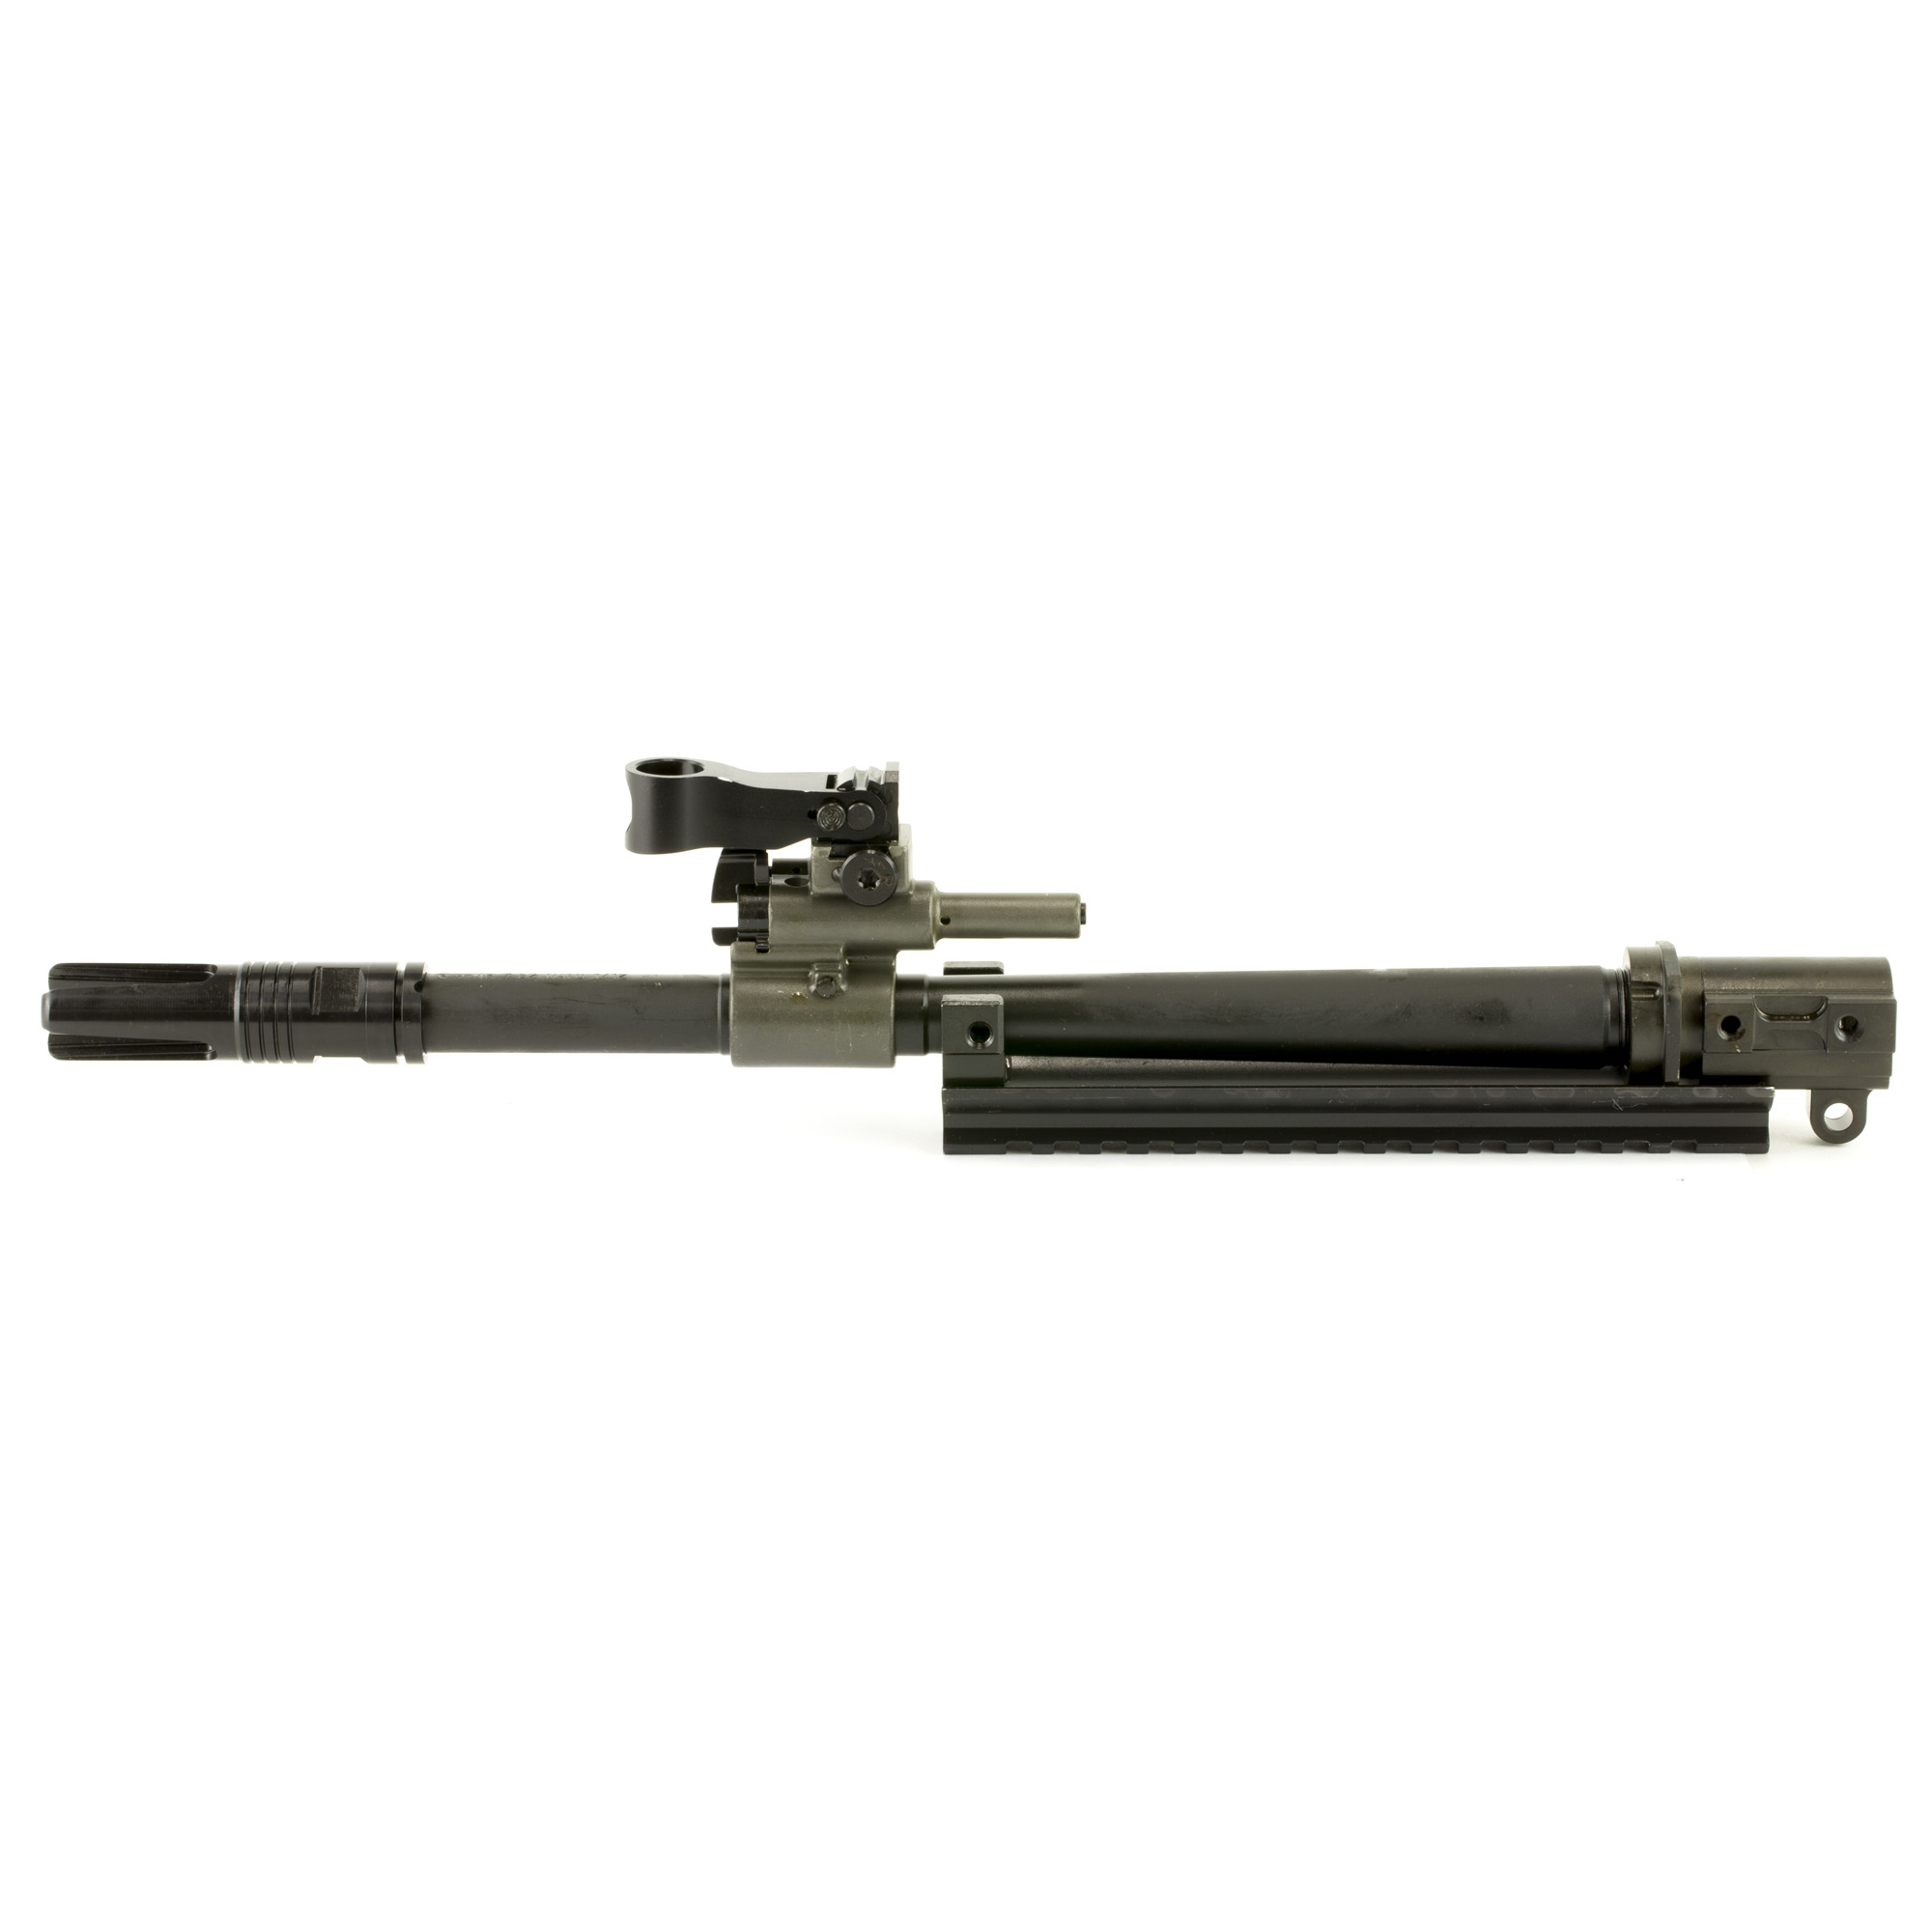 """The FN SCAR(R) barrel assemblies are cold hammer-forged"""" chrome-lined MIL-SPEC steel barrels with front sight assembly"""" gas block assembly"""" gas regulator"""" gas piston and flash hider installed. Available in short lengths for reduced weight"""" fast handling and confined space maneuvering; standard lengths for replacement of existing barrels; and long lengths for increased velocity and extended range capability. Assemblies can be easily installed by the user with a Torx(R) T25 and 62 In Lb torque wrench and are ready to shoot without headspacing."""